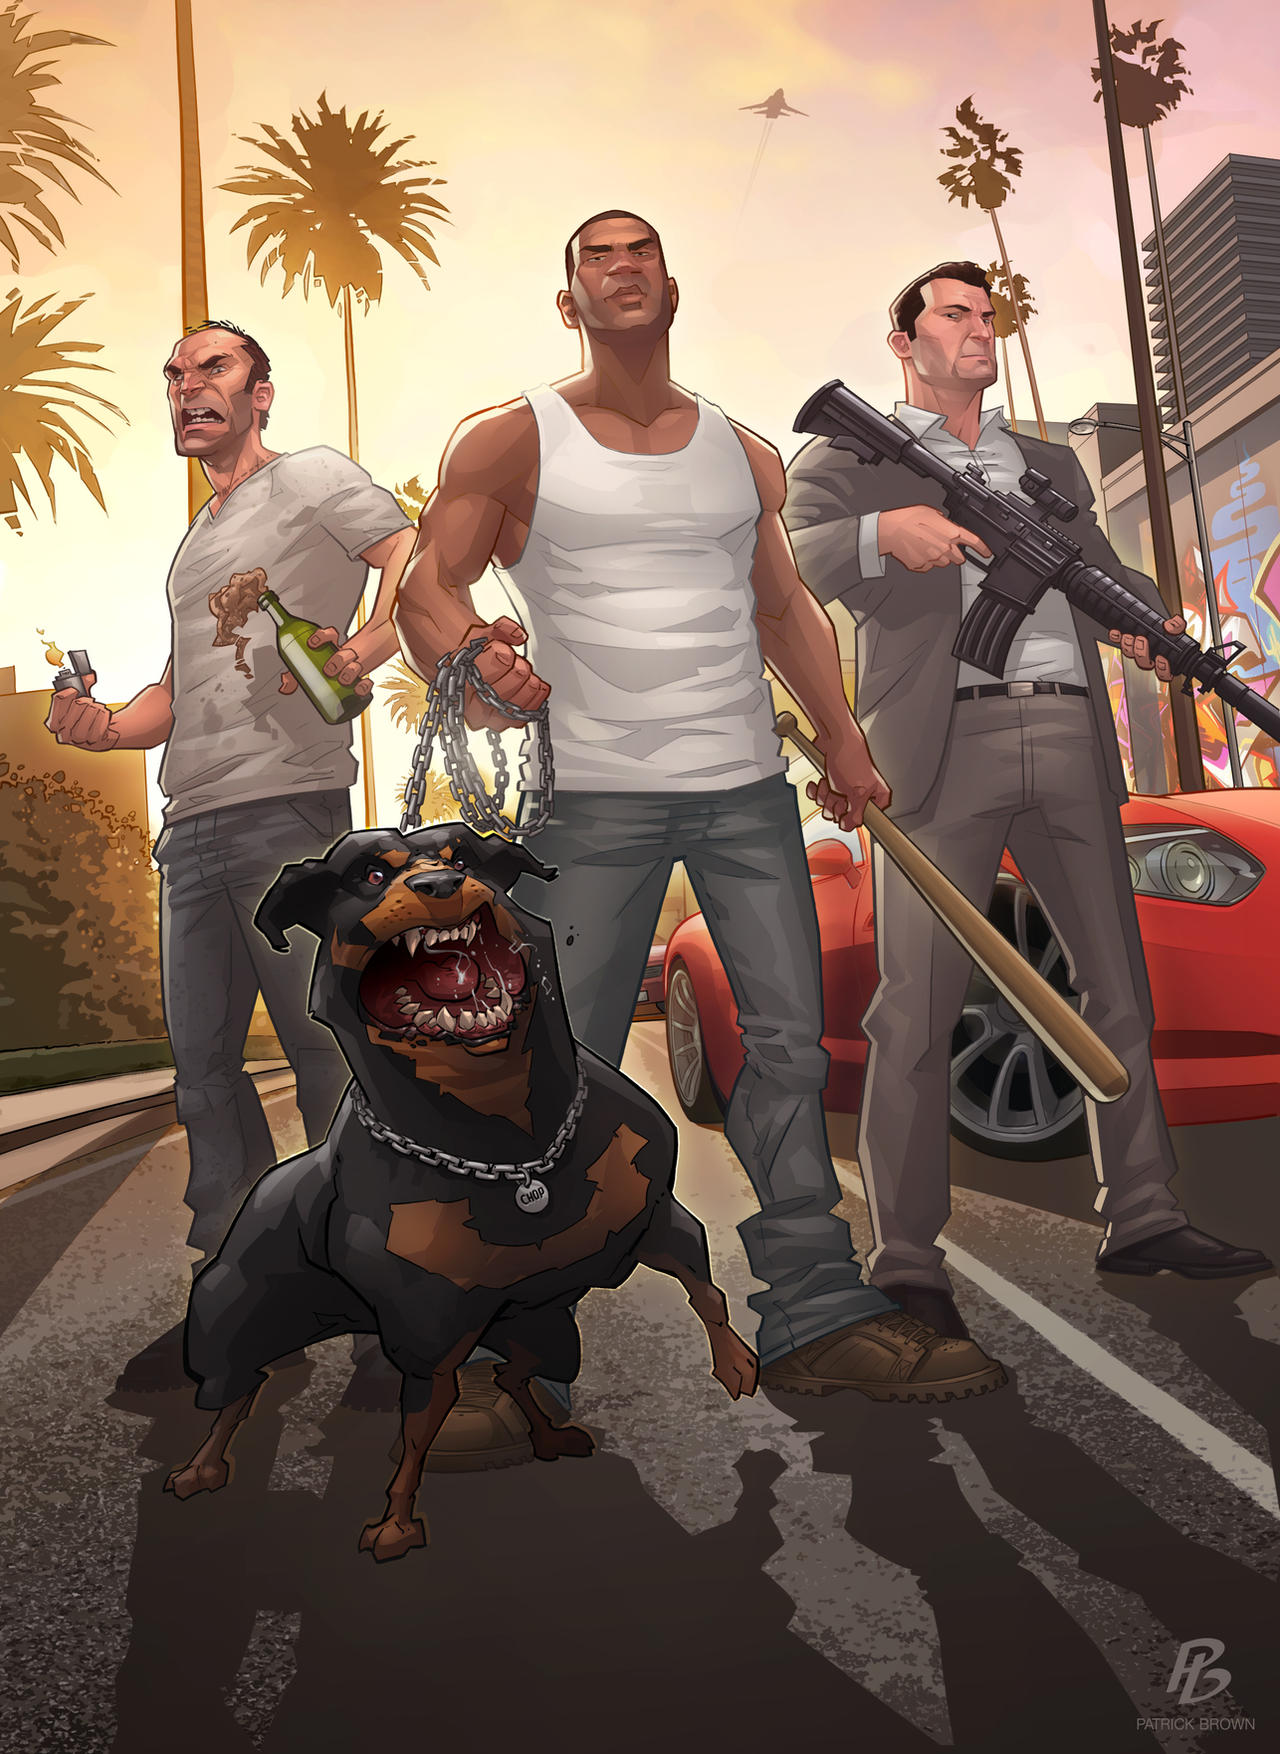 Grand Theft Auto 5 Fan Art Illustrations: Wacky and Awesome  Grand Theft Aut...